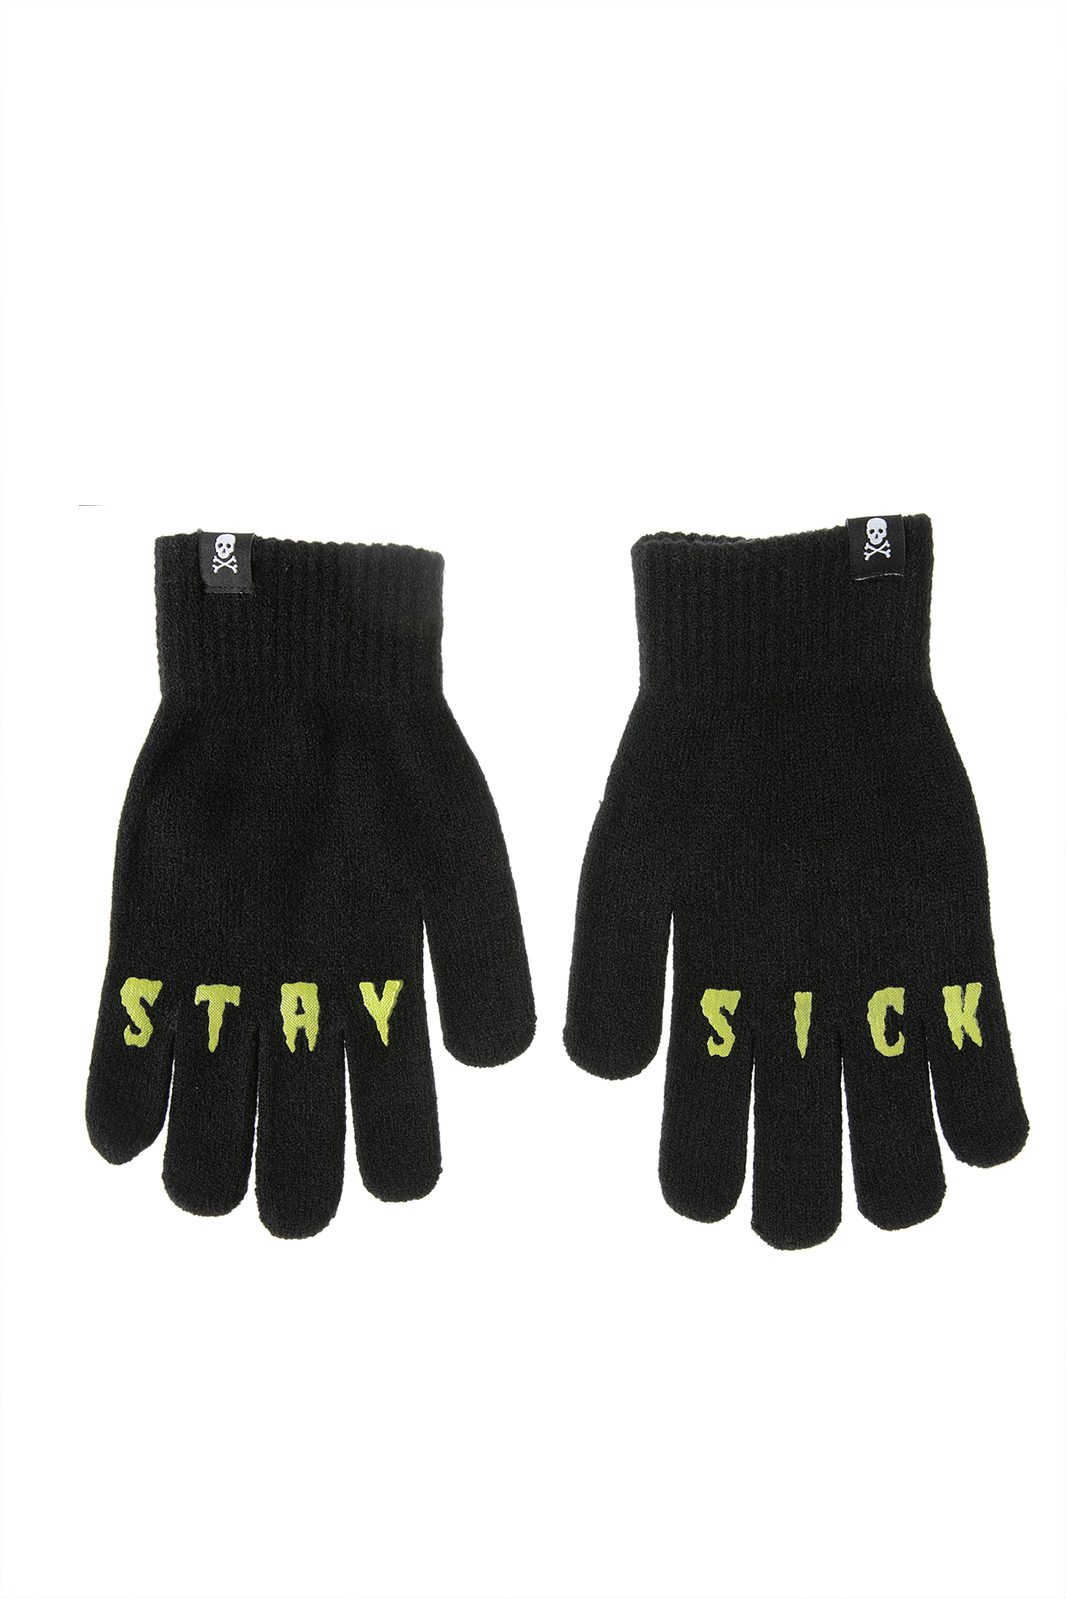 Stay Sick Knit Gloves